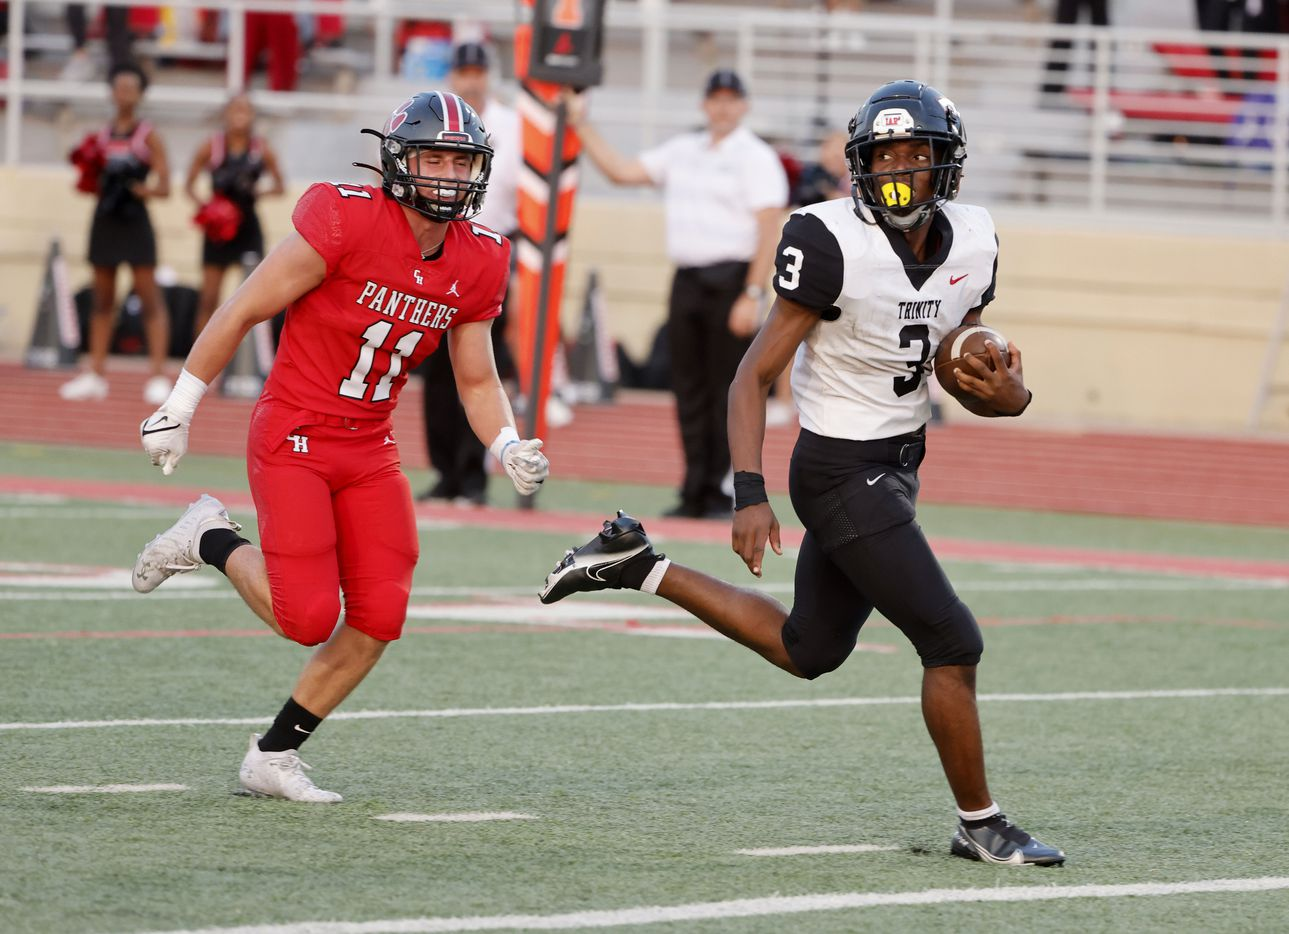 Trinity running back Gary Maddox (3) scores a rushing touchdown in front of Colleyville Heritage defender Brannan Mannix (11) during the first half of a high school football game in Grapevine, Texas on Friday, Sept. 10, 2021. (Michael Ainsworth/Special Contributor)